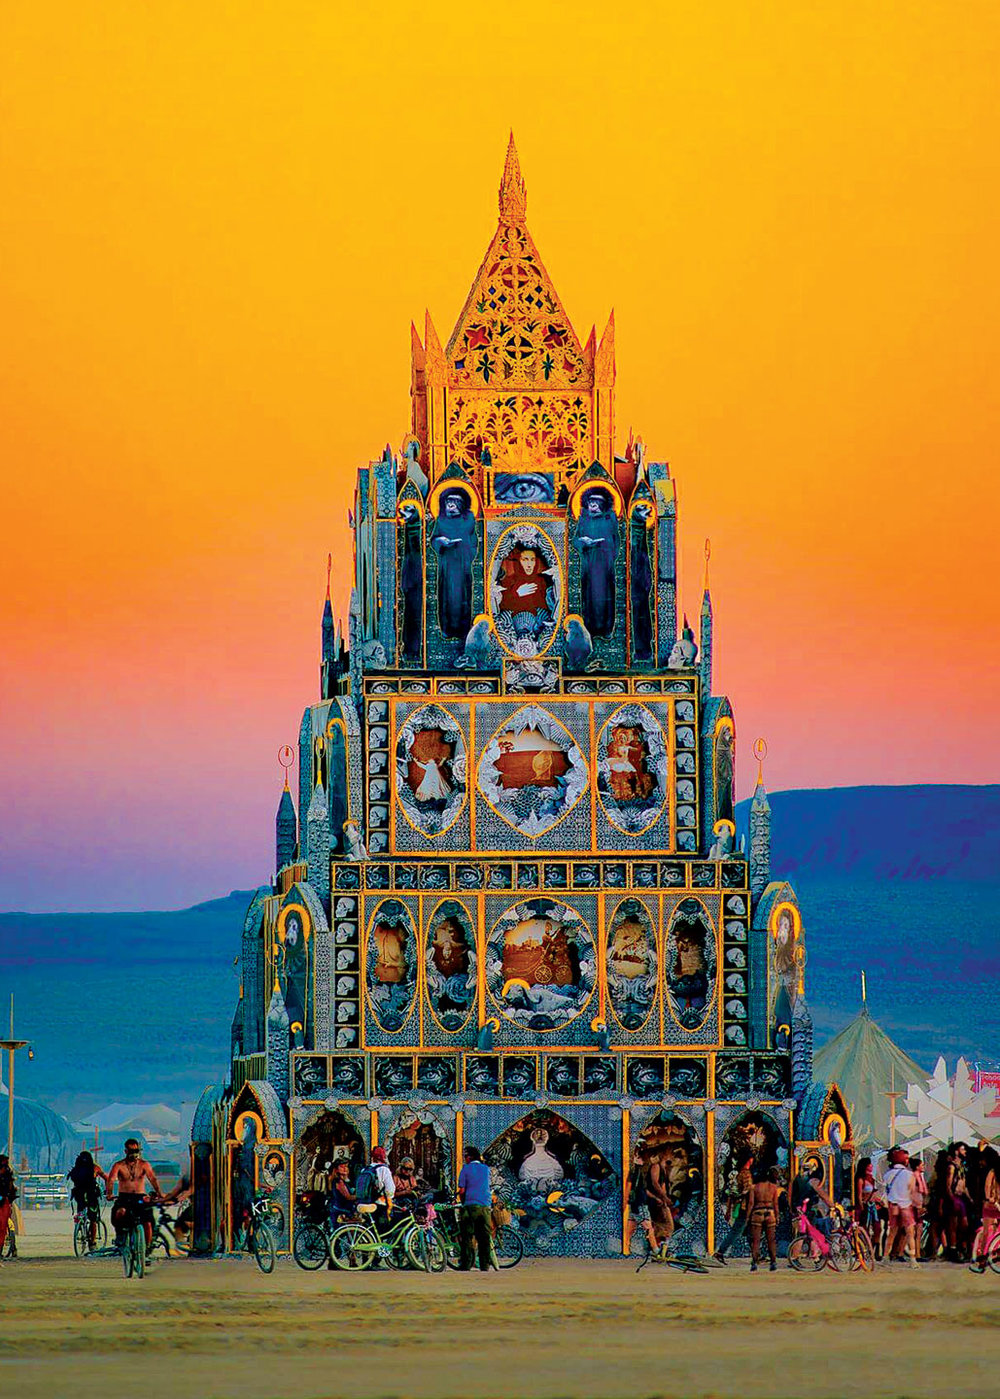 TOTEM OF CONFESSIONS   by Michael Garlington and Natalia Bertotti at Burning Man, 2015.  Photograph by Michael Holden, courtesy of the Renwick Gallery.